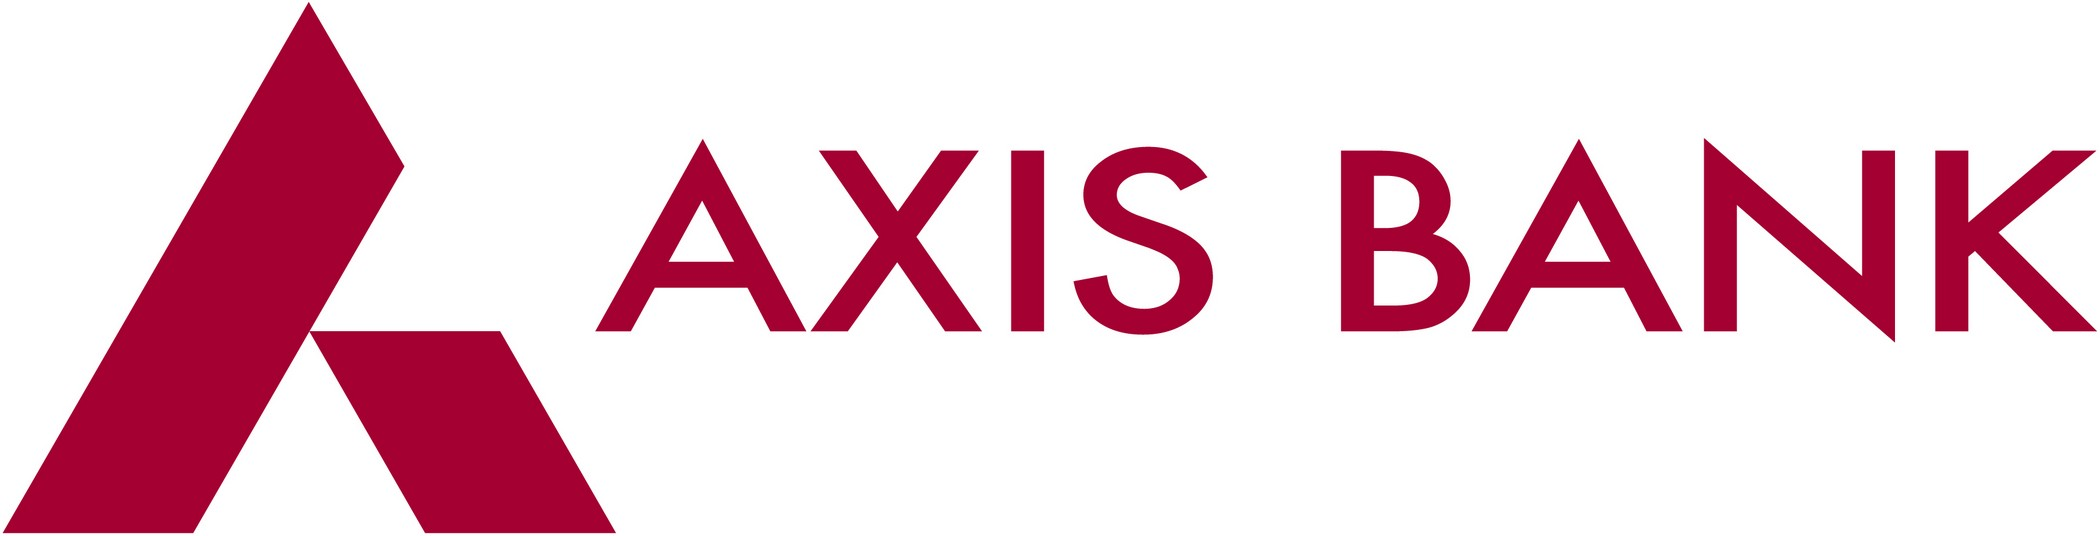 Axis Bank Cidco Aurangabad Customer Care Number,Toll Free Helpline,Email Id